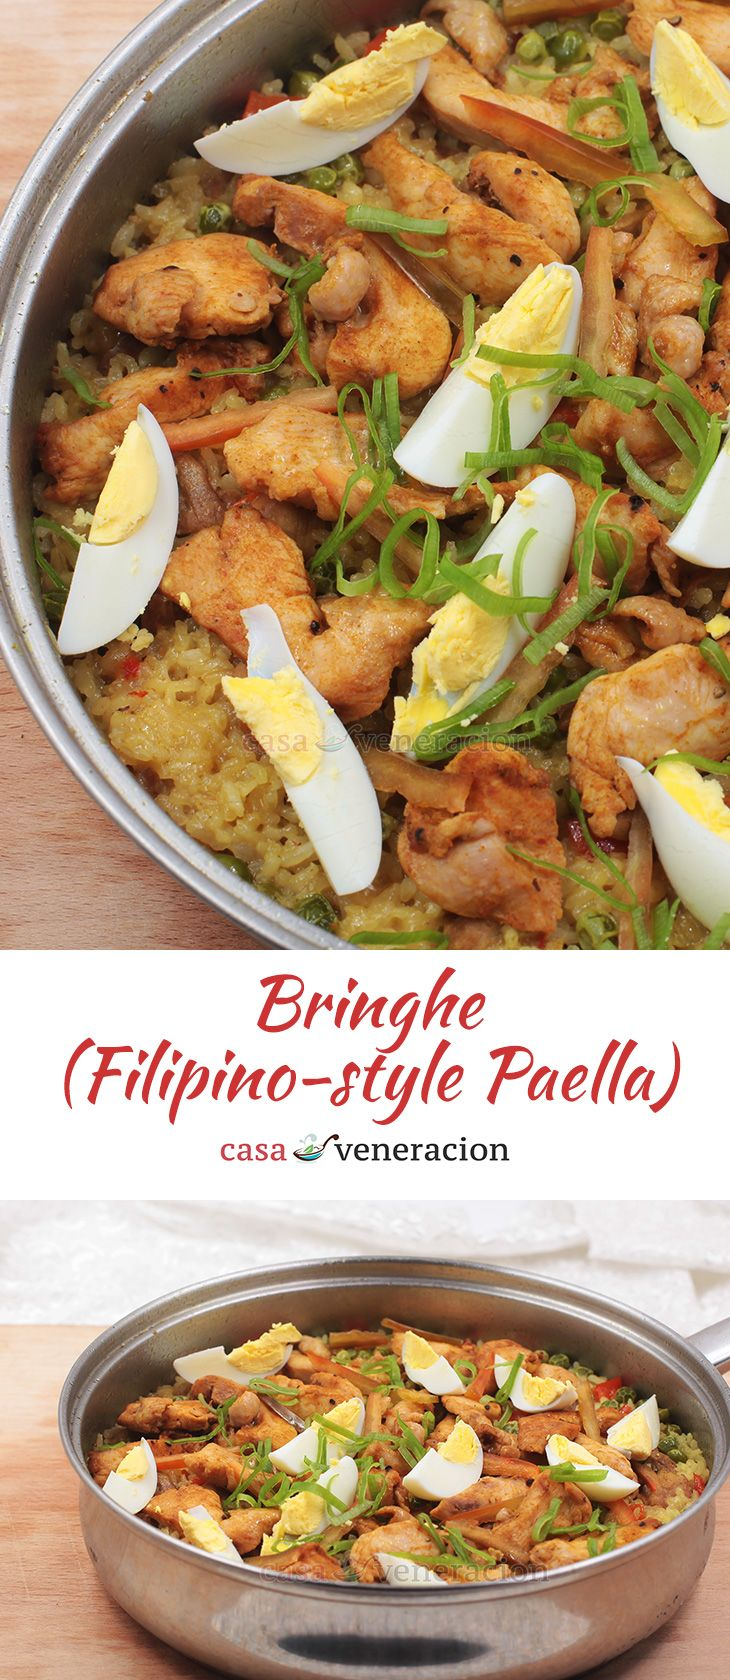 Central Luzon's answer to the Visayas' Arroz a la Valencia, bringhe is rice and meat (or seafood) cooked in coconut milk colored with turmeric. via @casaveneracion